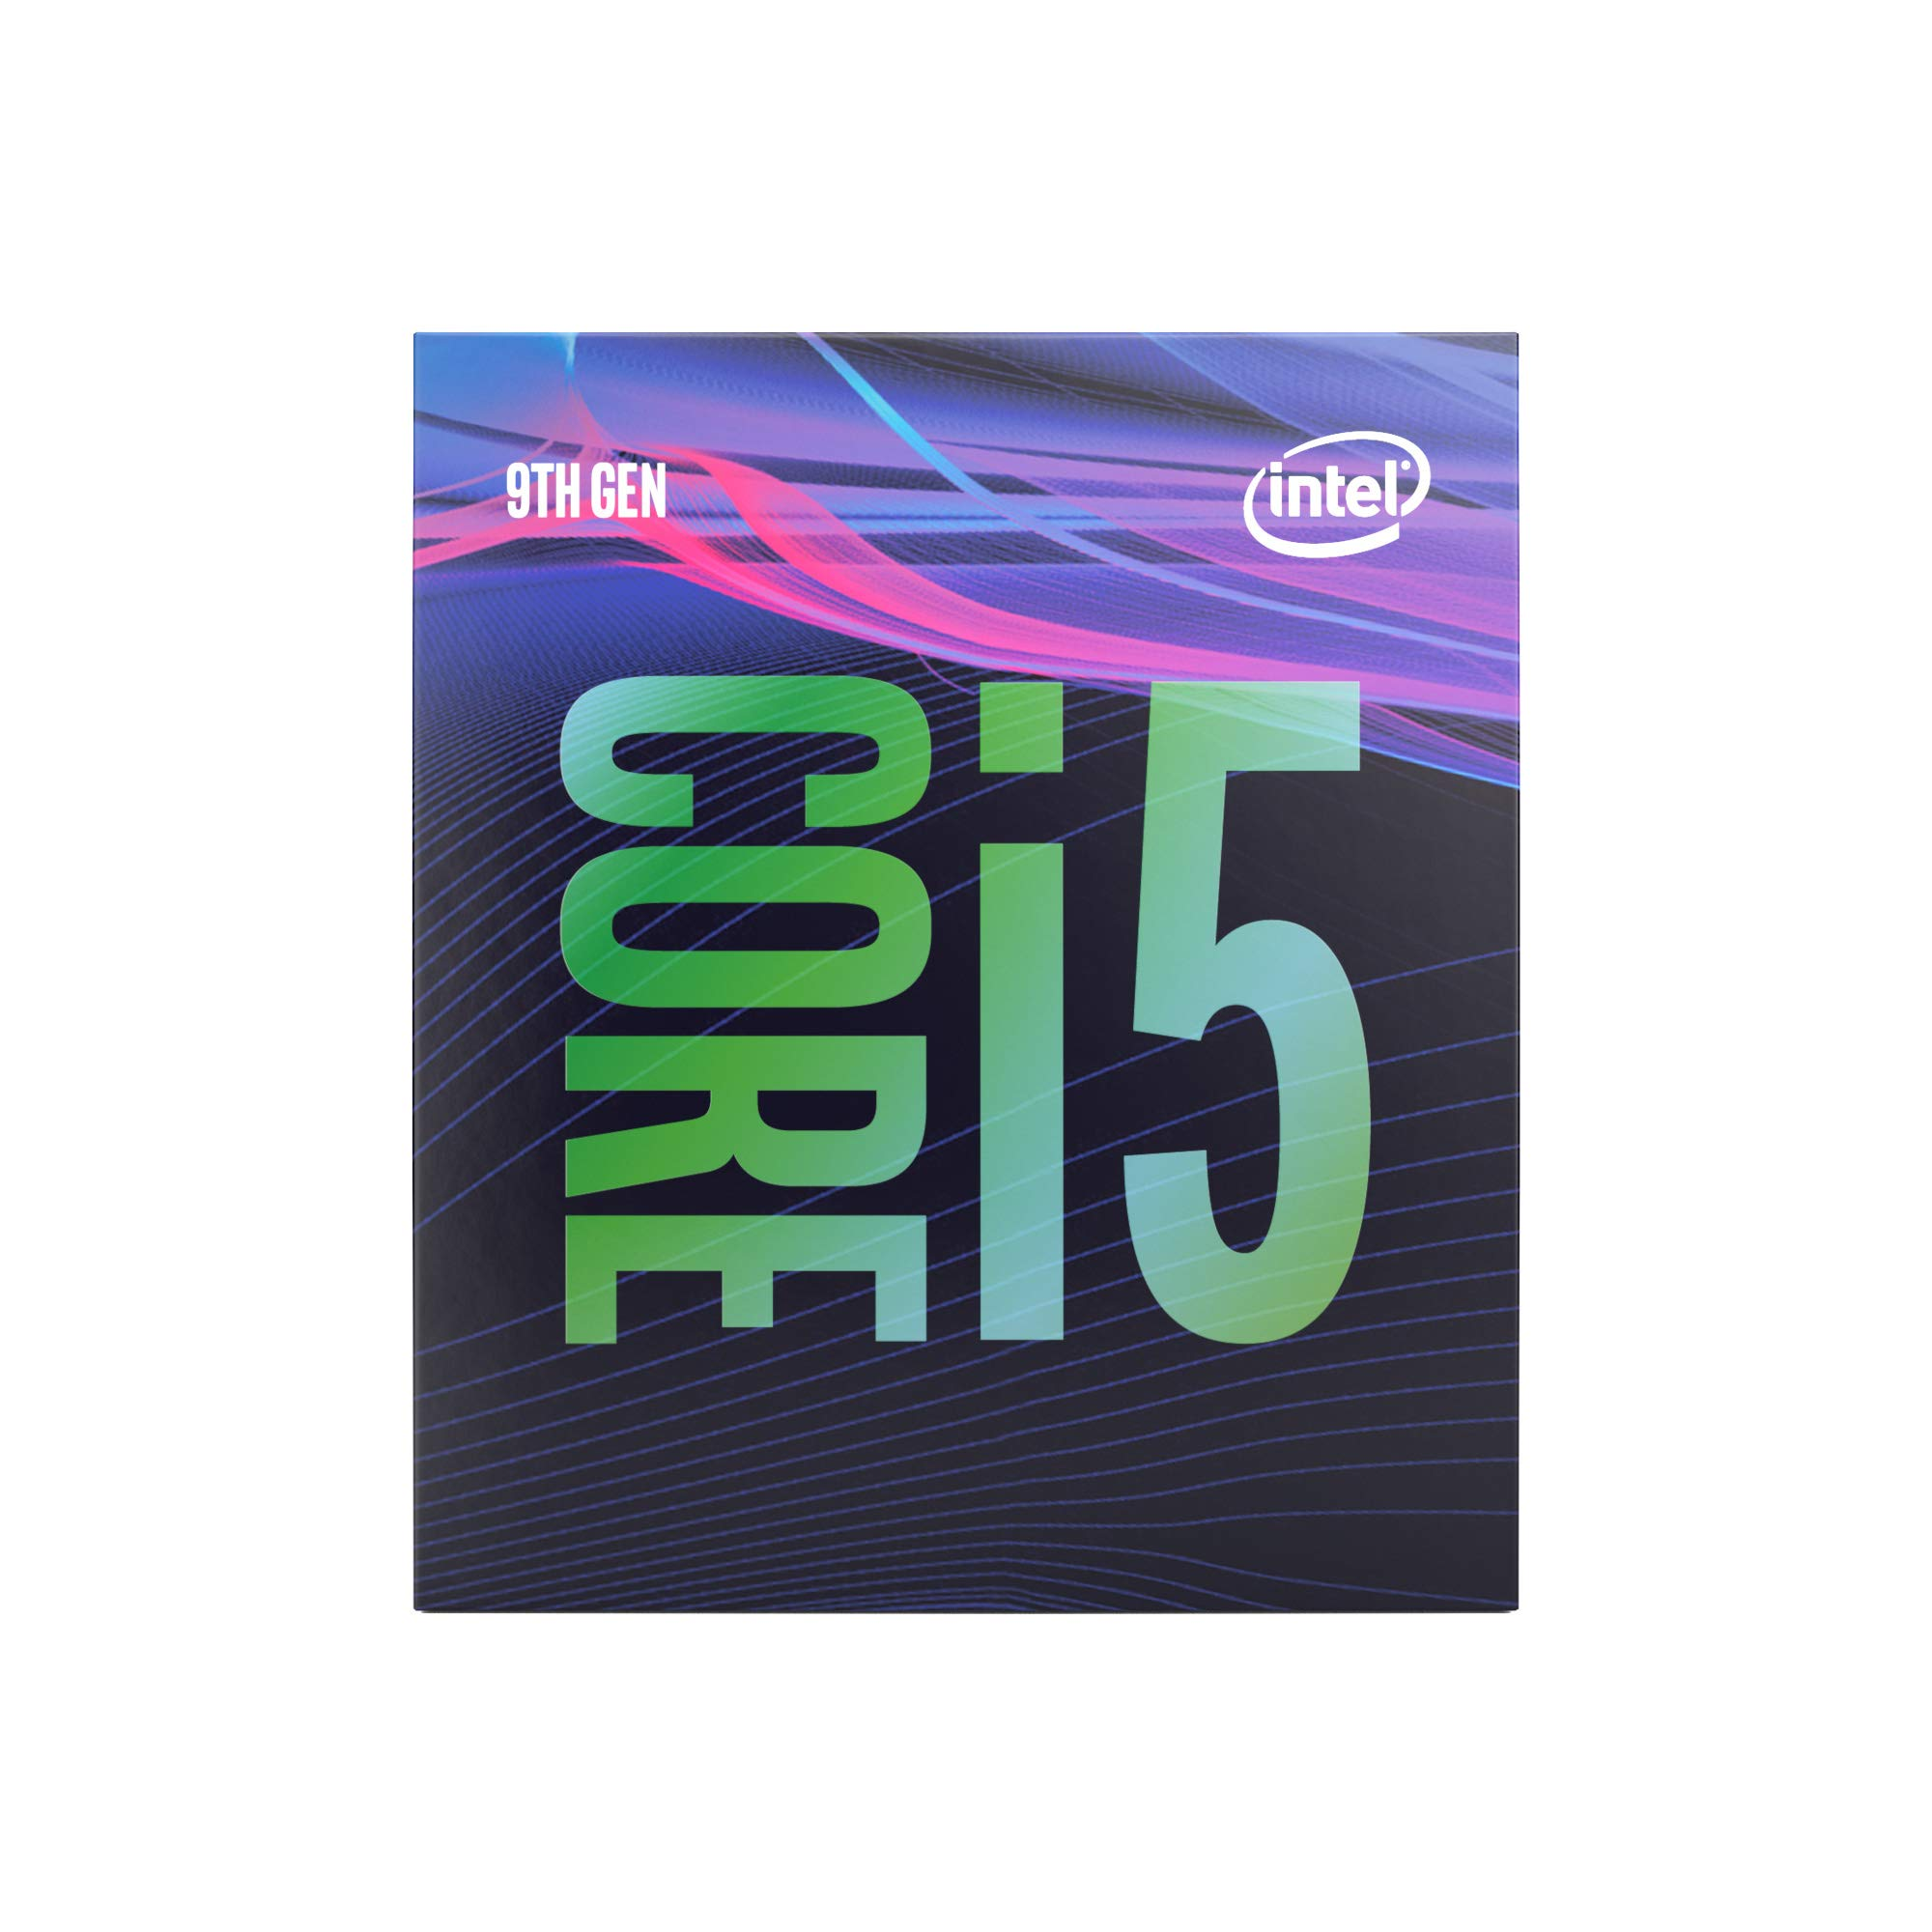 Intel Core i5-9400 6 Cores up to 4.1 GHz Turbo LGA1151 300 S